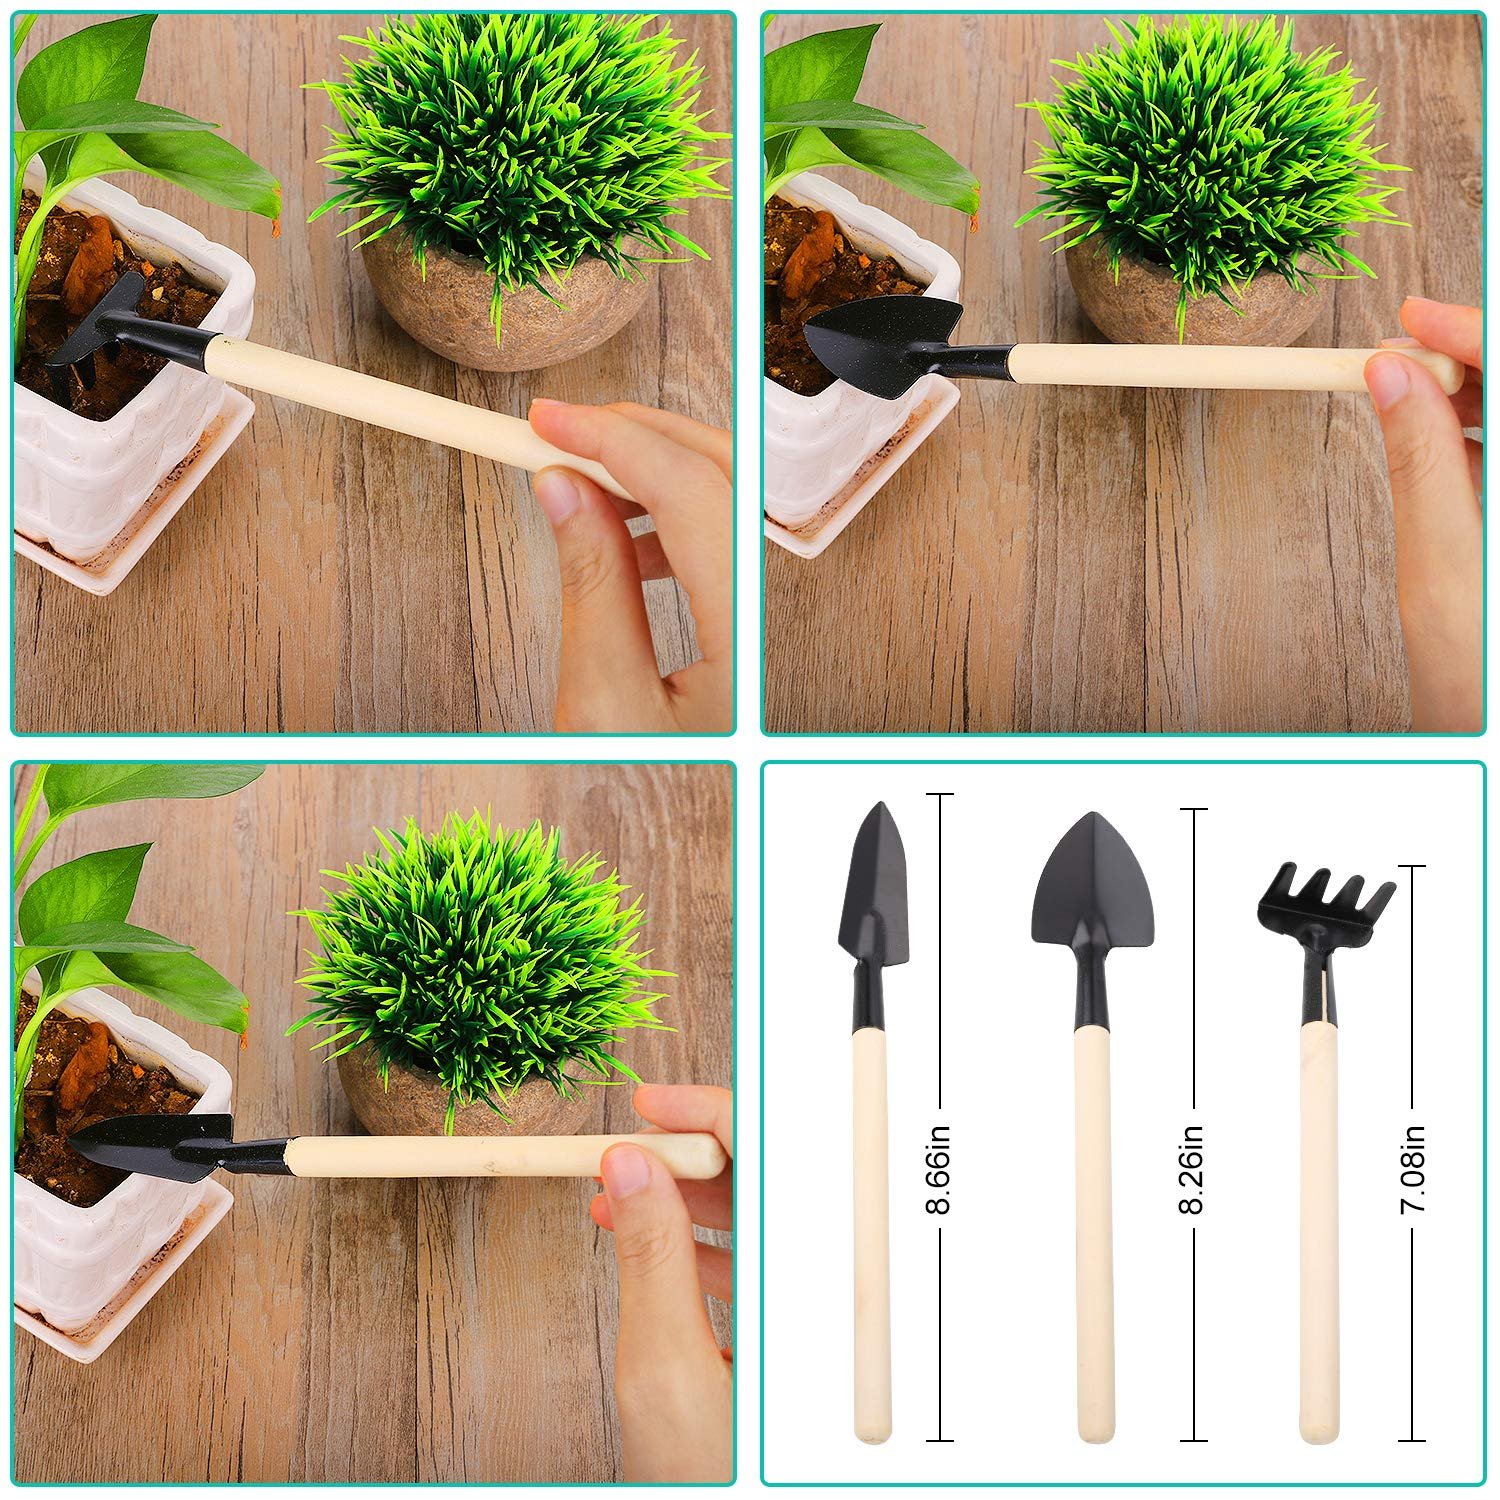 3 inch Peat Pots Plant Starter Bonus 30 Pack Plant Markers and 3 Pack Mini Gardening Tool Seeding Starter for Garden Nursery Pots 60 Pack Seed Starter Kit